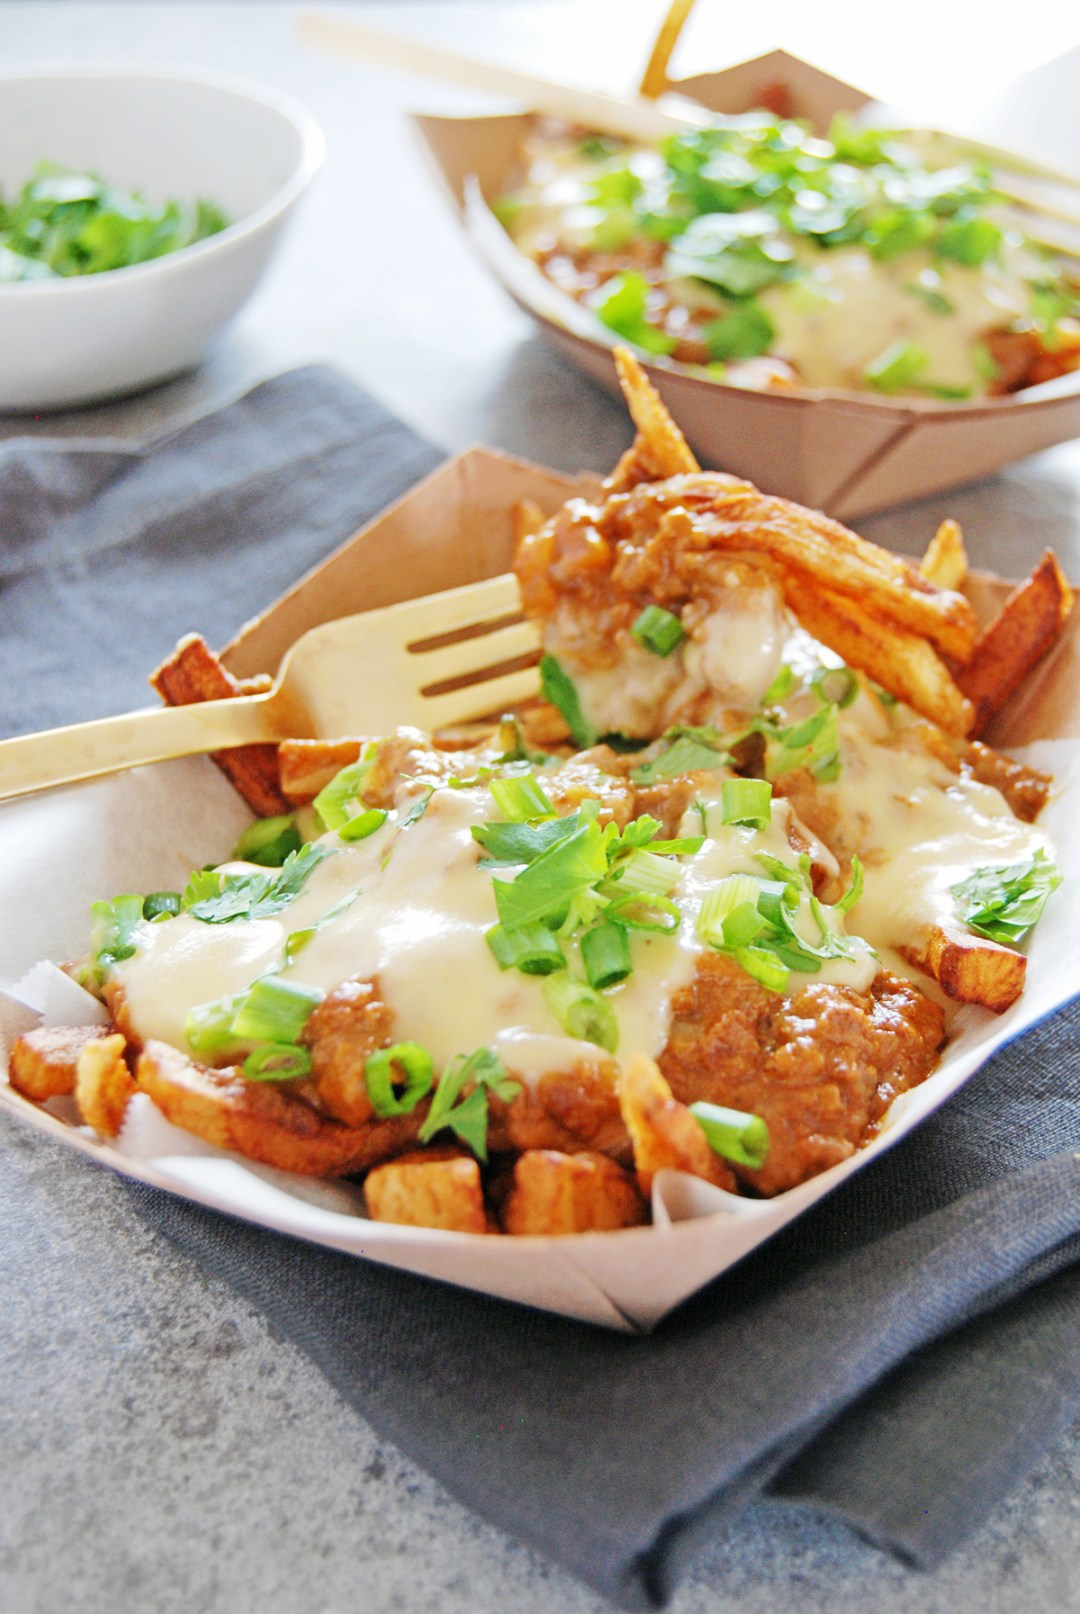 These tasty chorizo chili cheese fries feature a rich chili sauce made from Mexican chorizo and cheddar cheese sauce paired with crispy french fries.